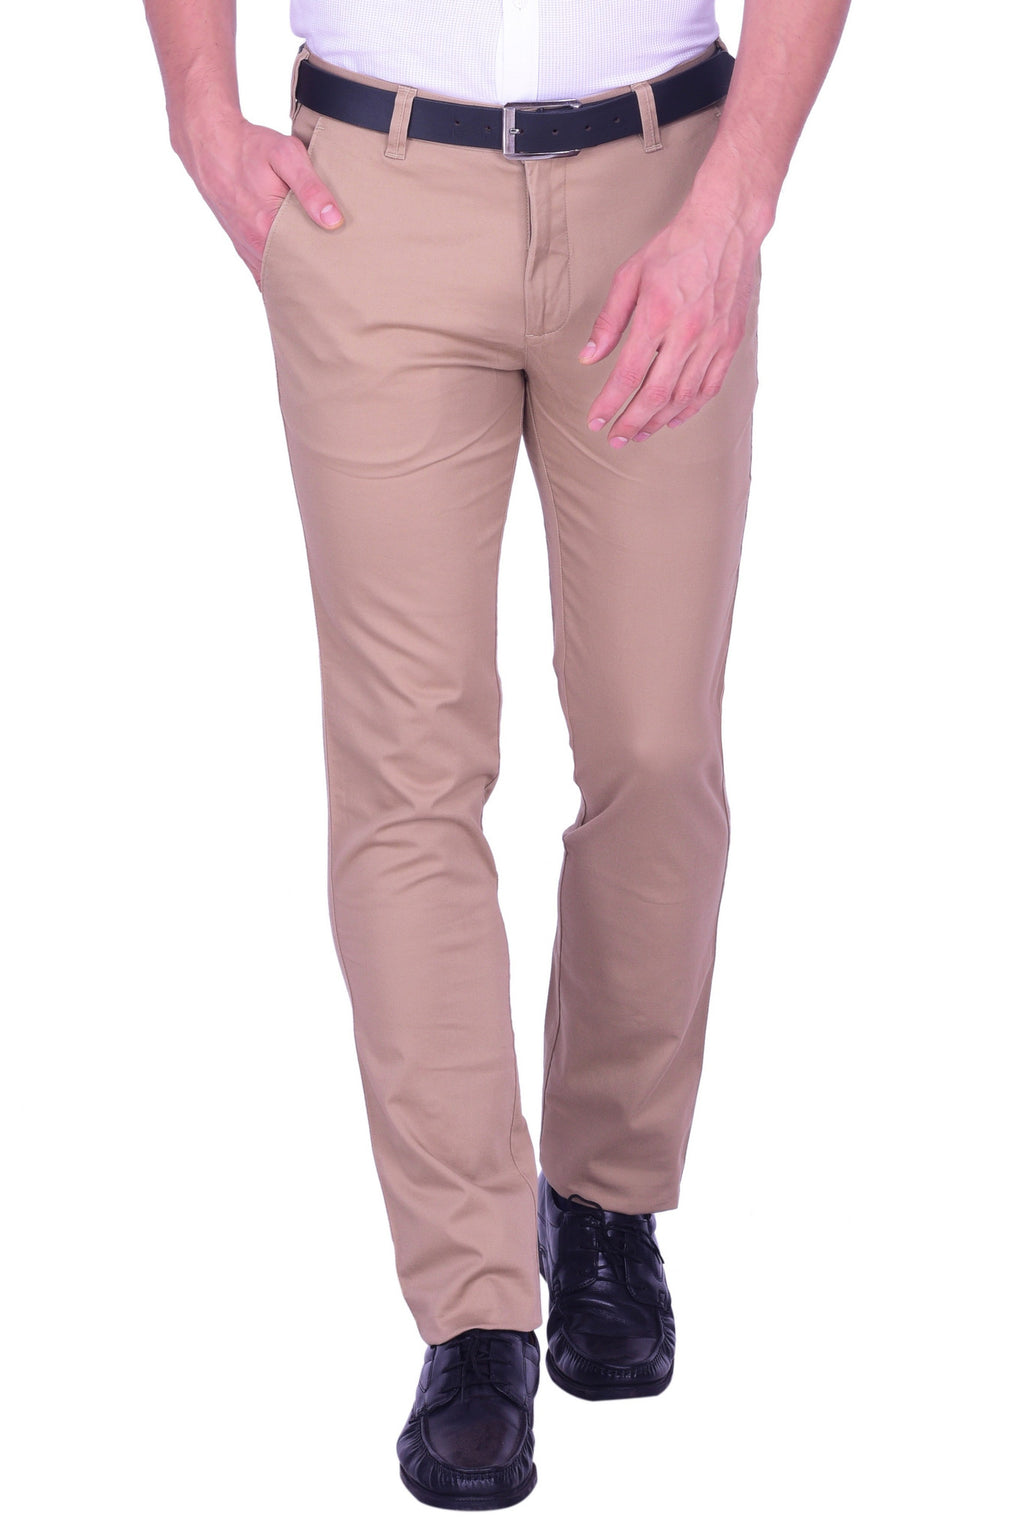 Hoffmen Slim Fit Flat Front  Men's  biscuit Colour Trousers SSG3009